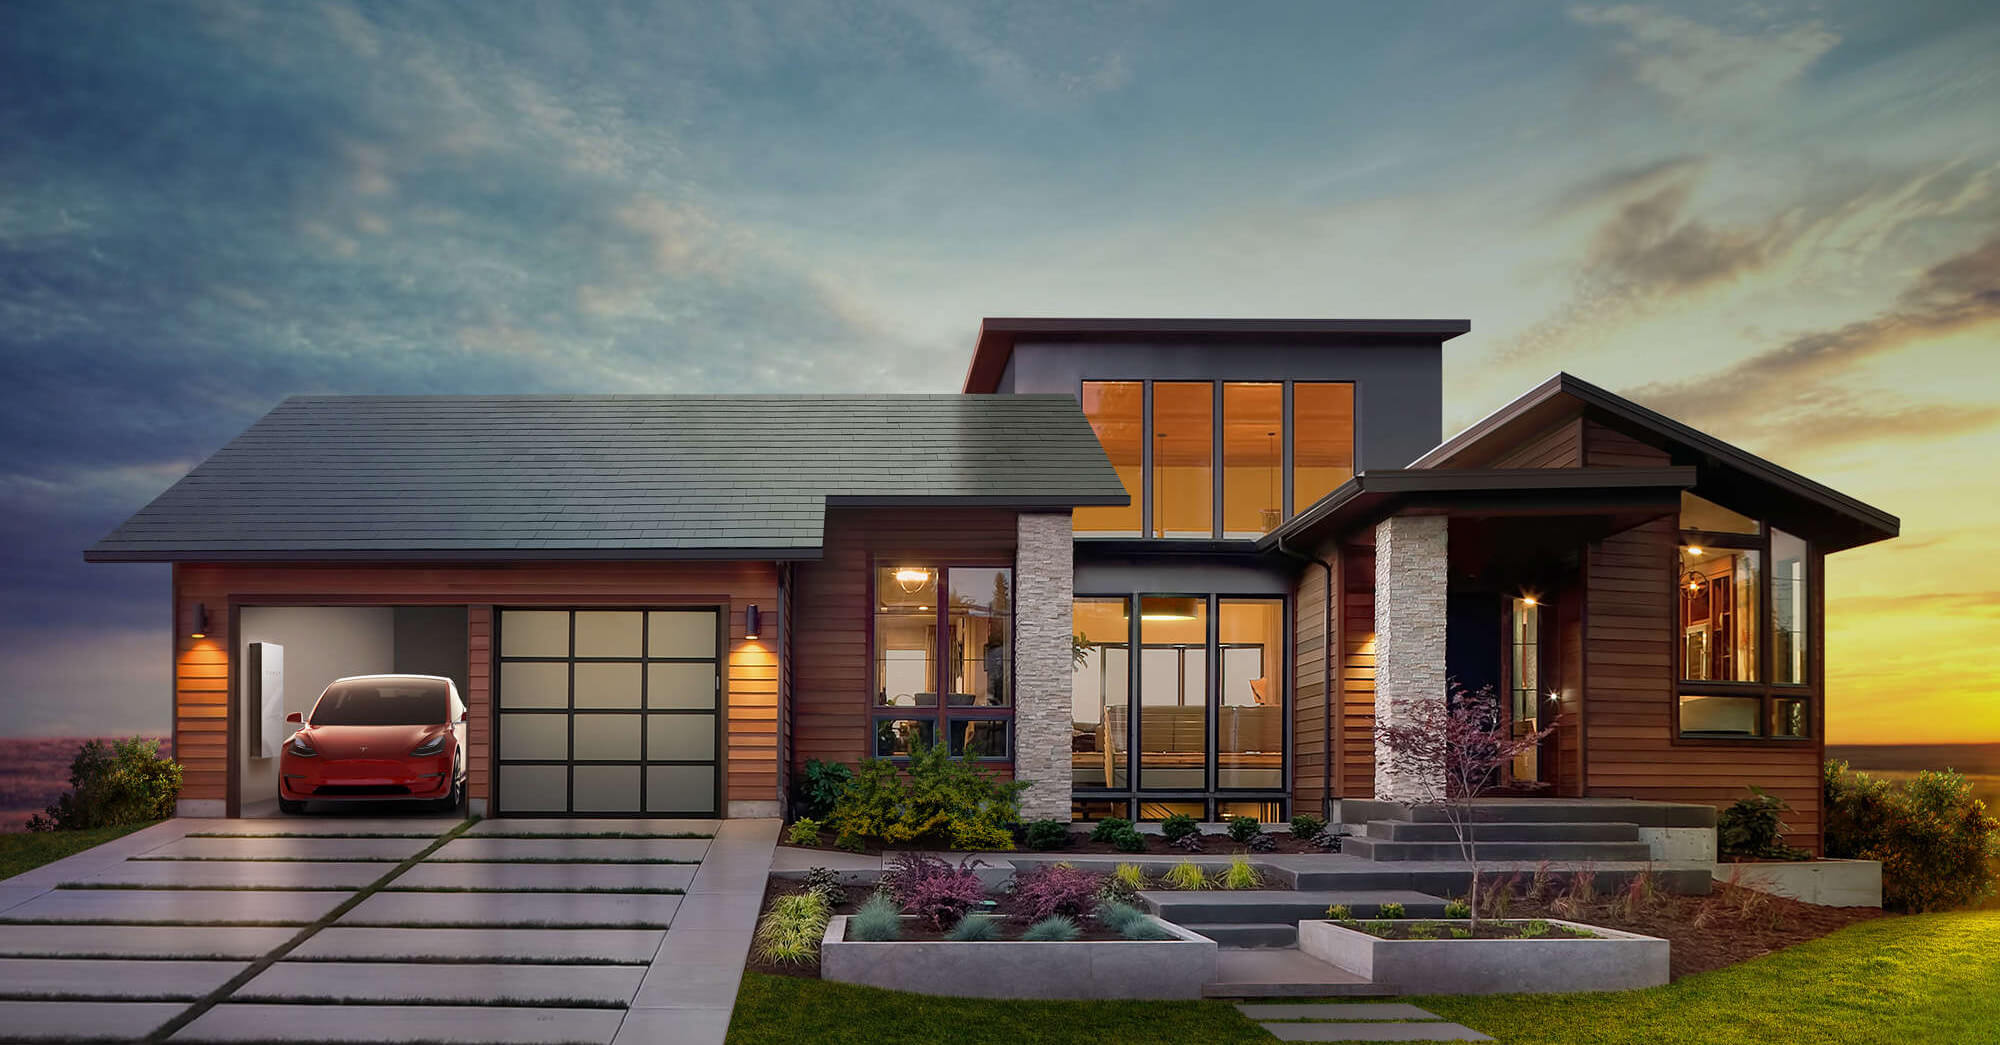 Solarcity Roof Tiles >> Tesla solar roof tiles to ship to UK in 2018 | Solar Power ...